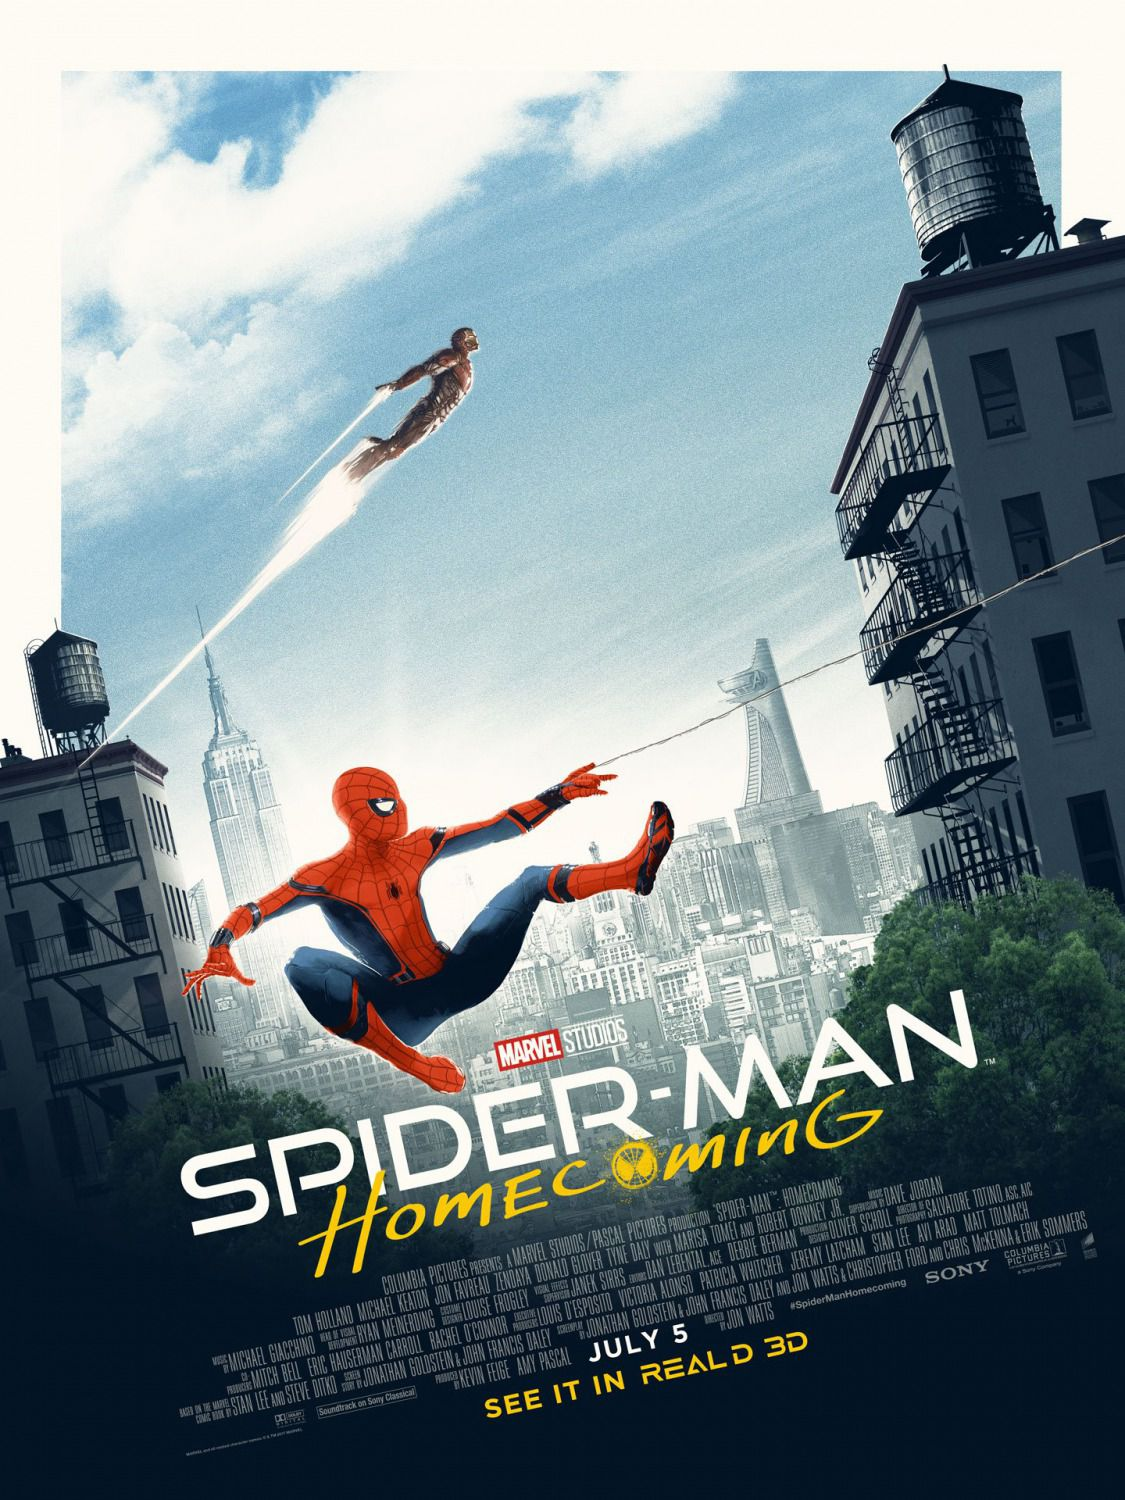 Spiderman homecoming poster jump